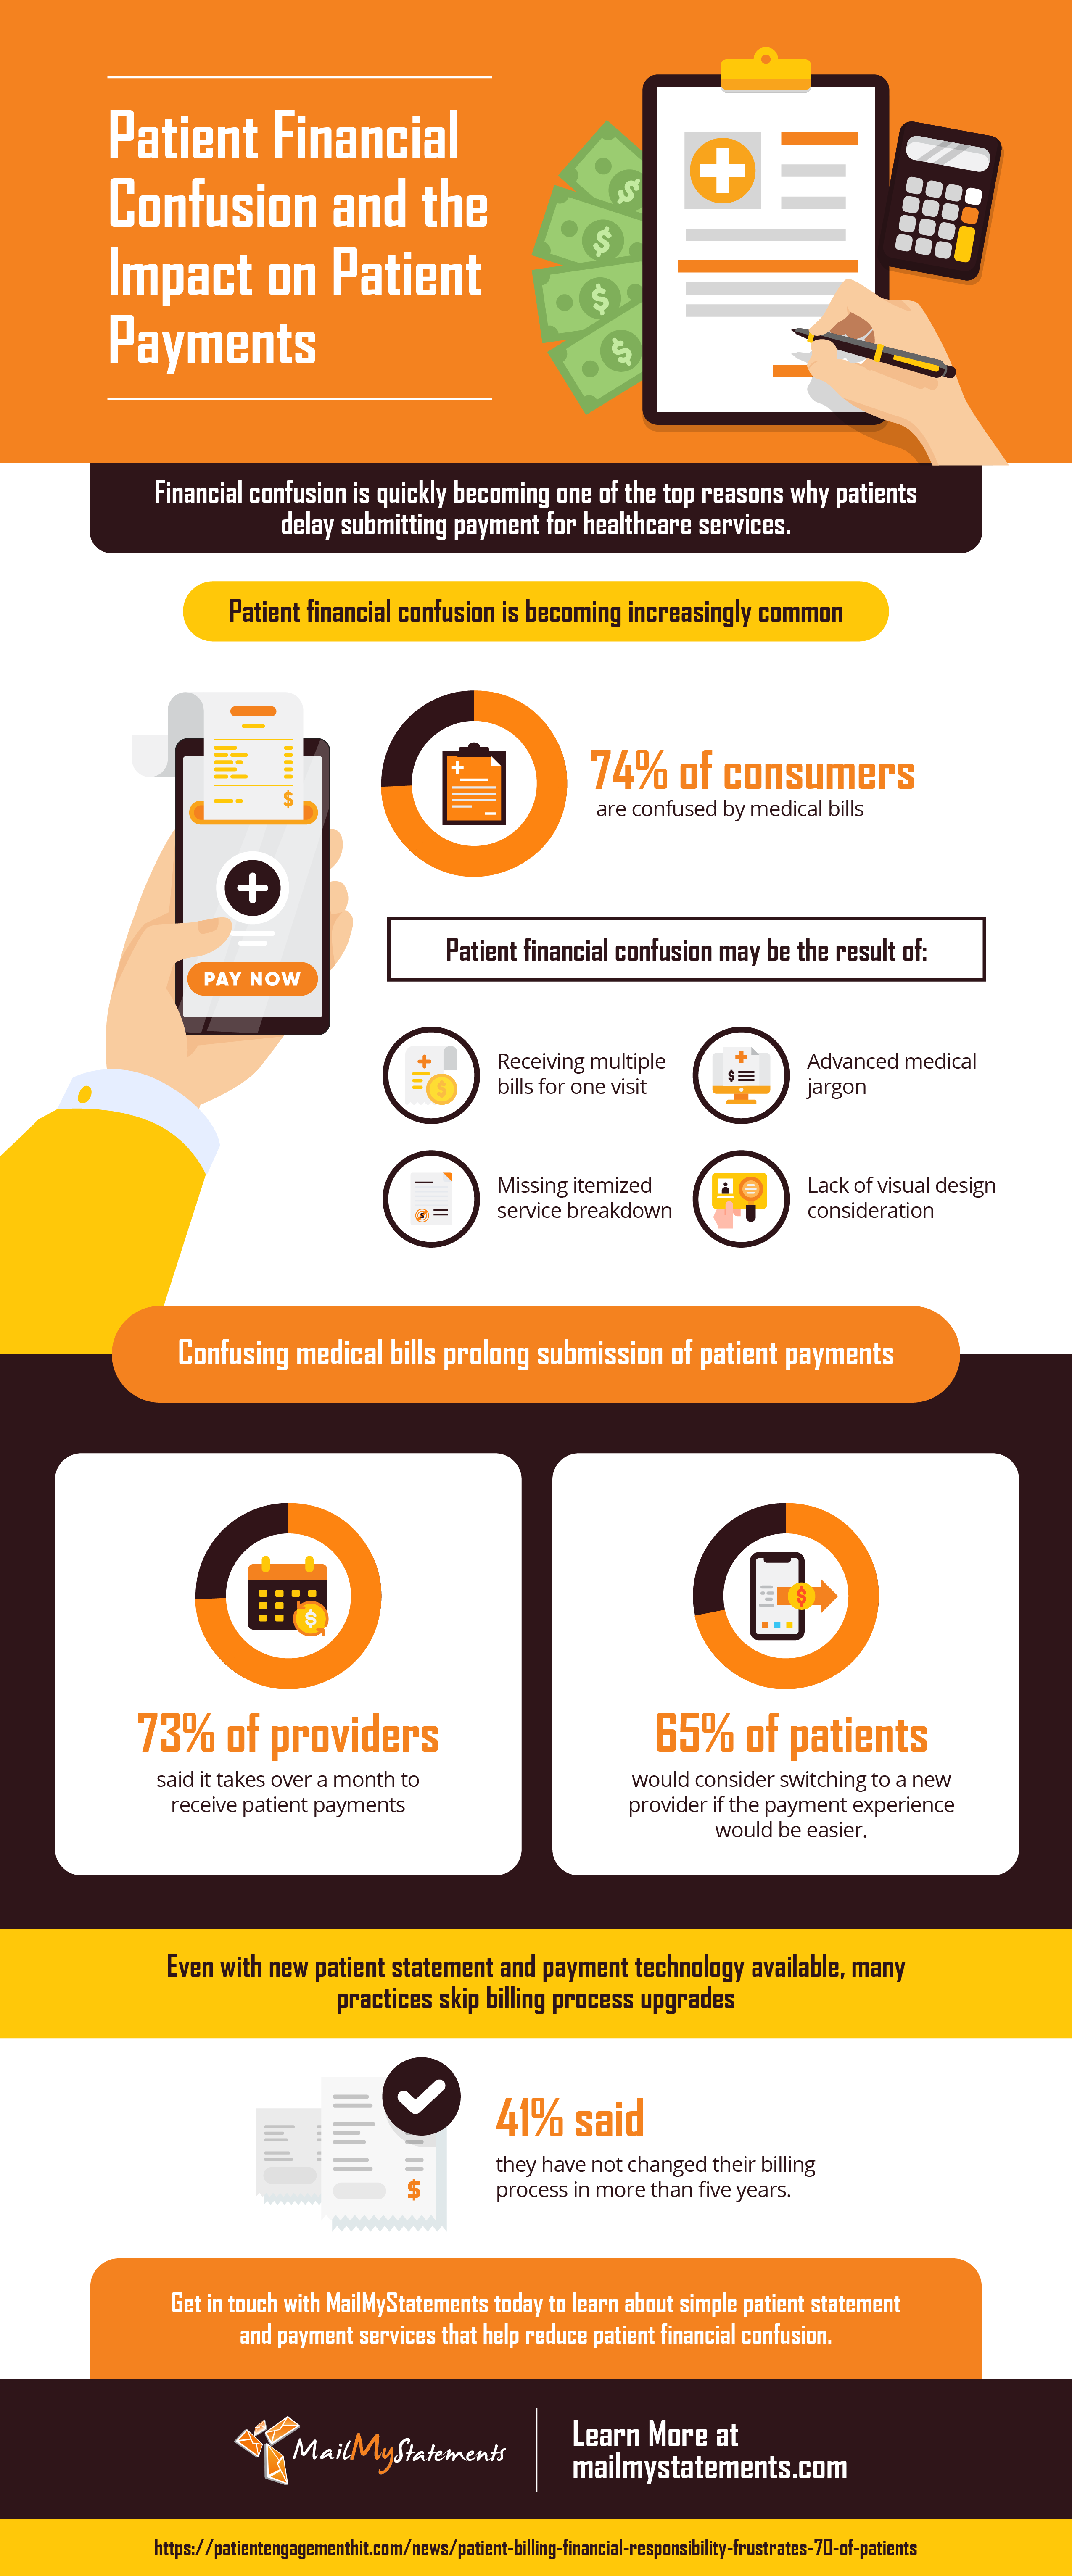 Patient Financial Confusion and the Impact on Patient Payments